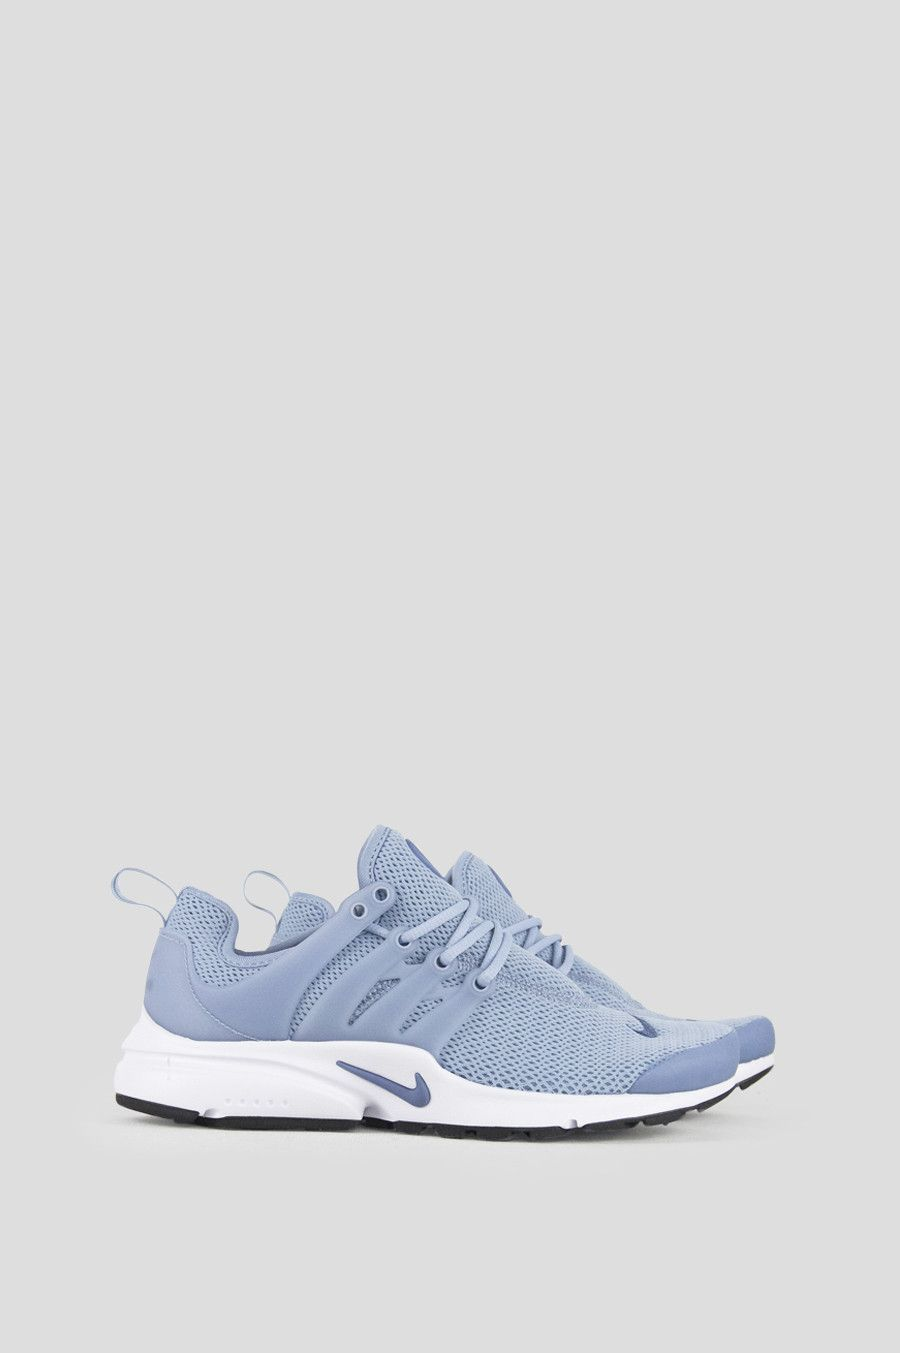 new arrival 2599f 107f3 The Nike Air Presto Women s Shoe is inspired by the comfort and minimalism  of a classic T-shirt for lightweight everyday comfort. - Product Code   878068-400 ...